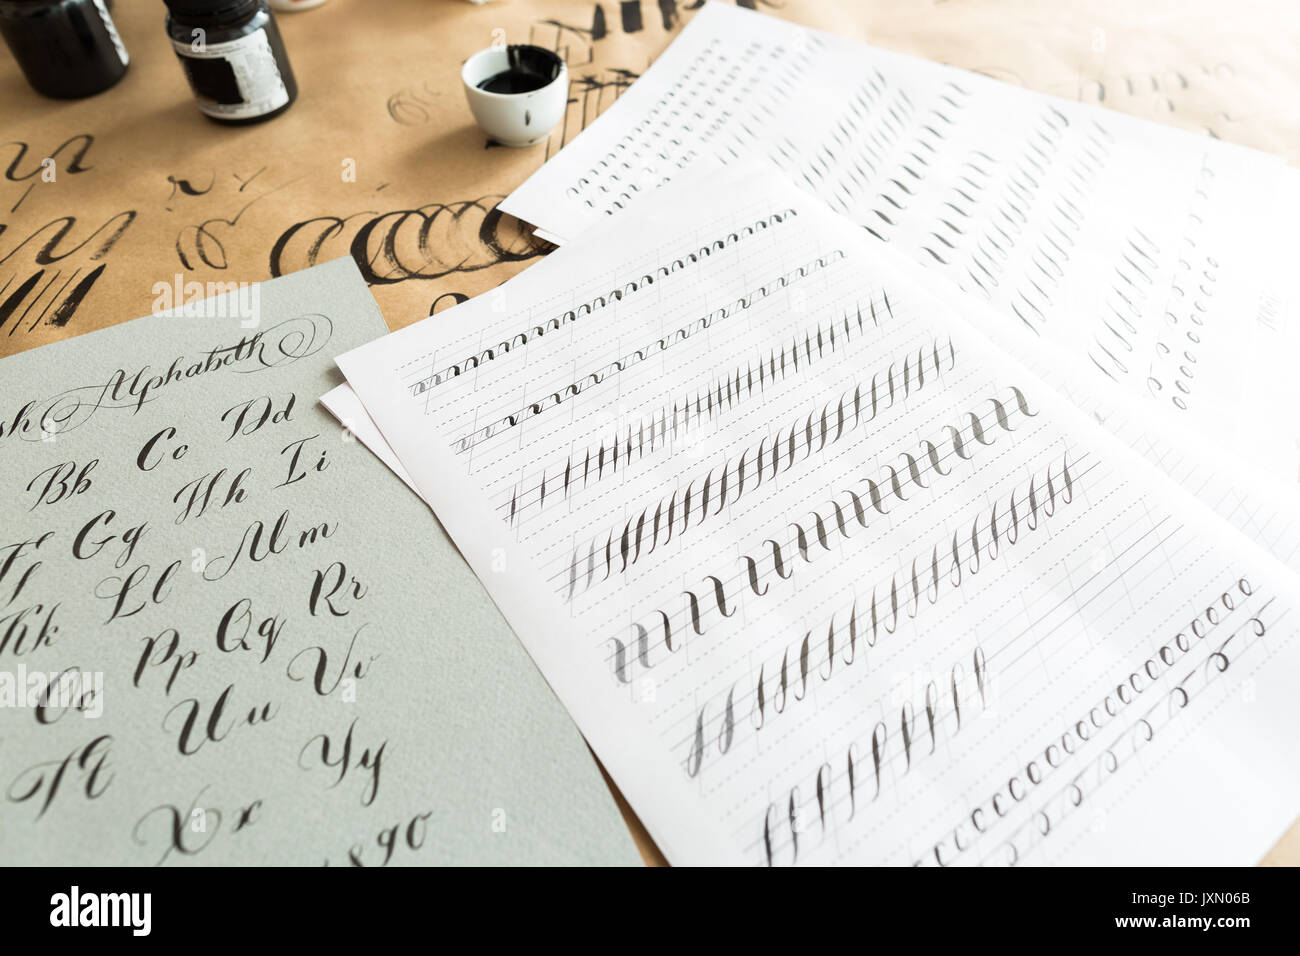 calligraphy, education, graphic design concept. lots of exercises for training skills of calligraphy with help of - Stock Image